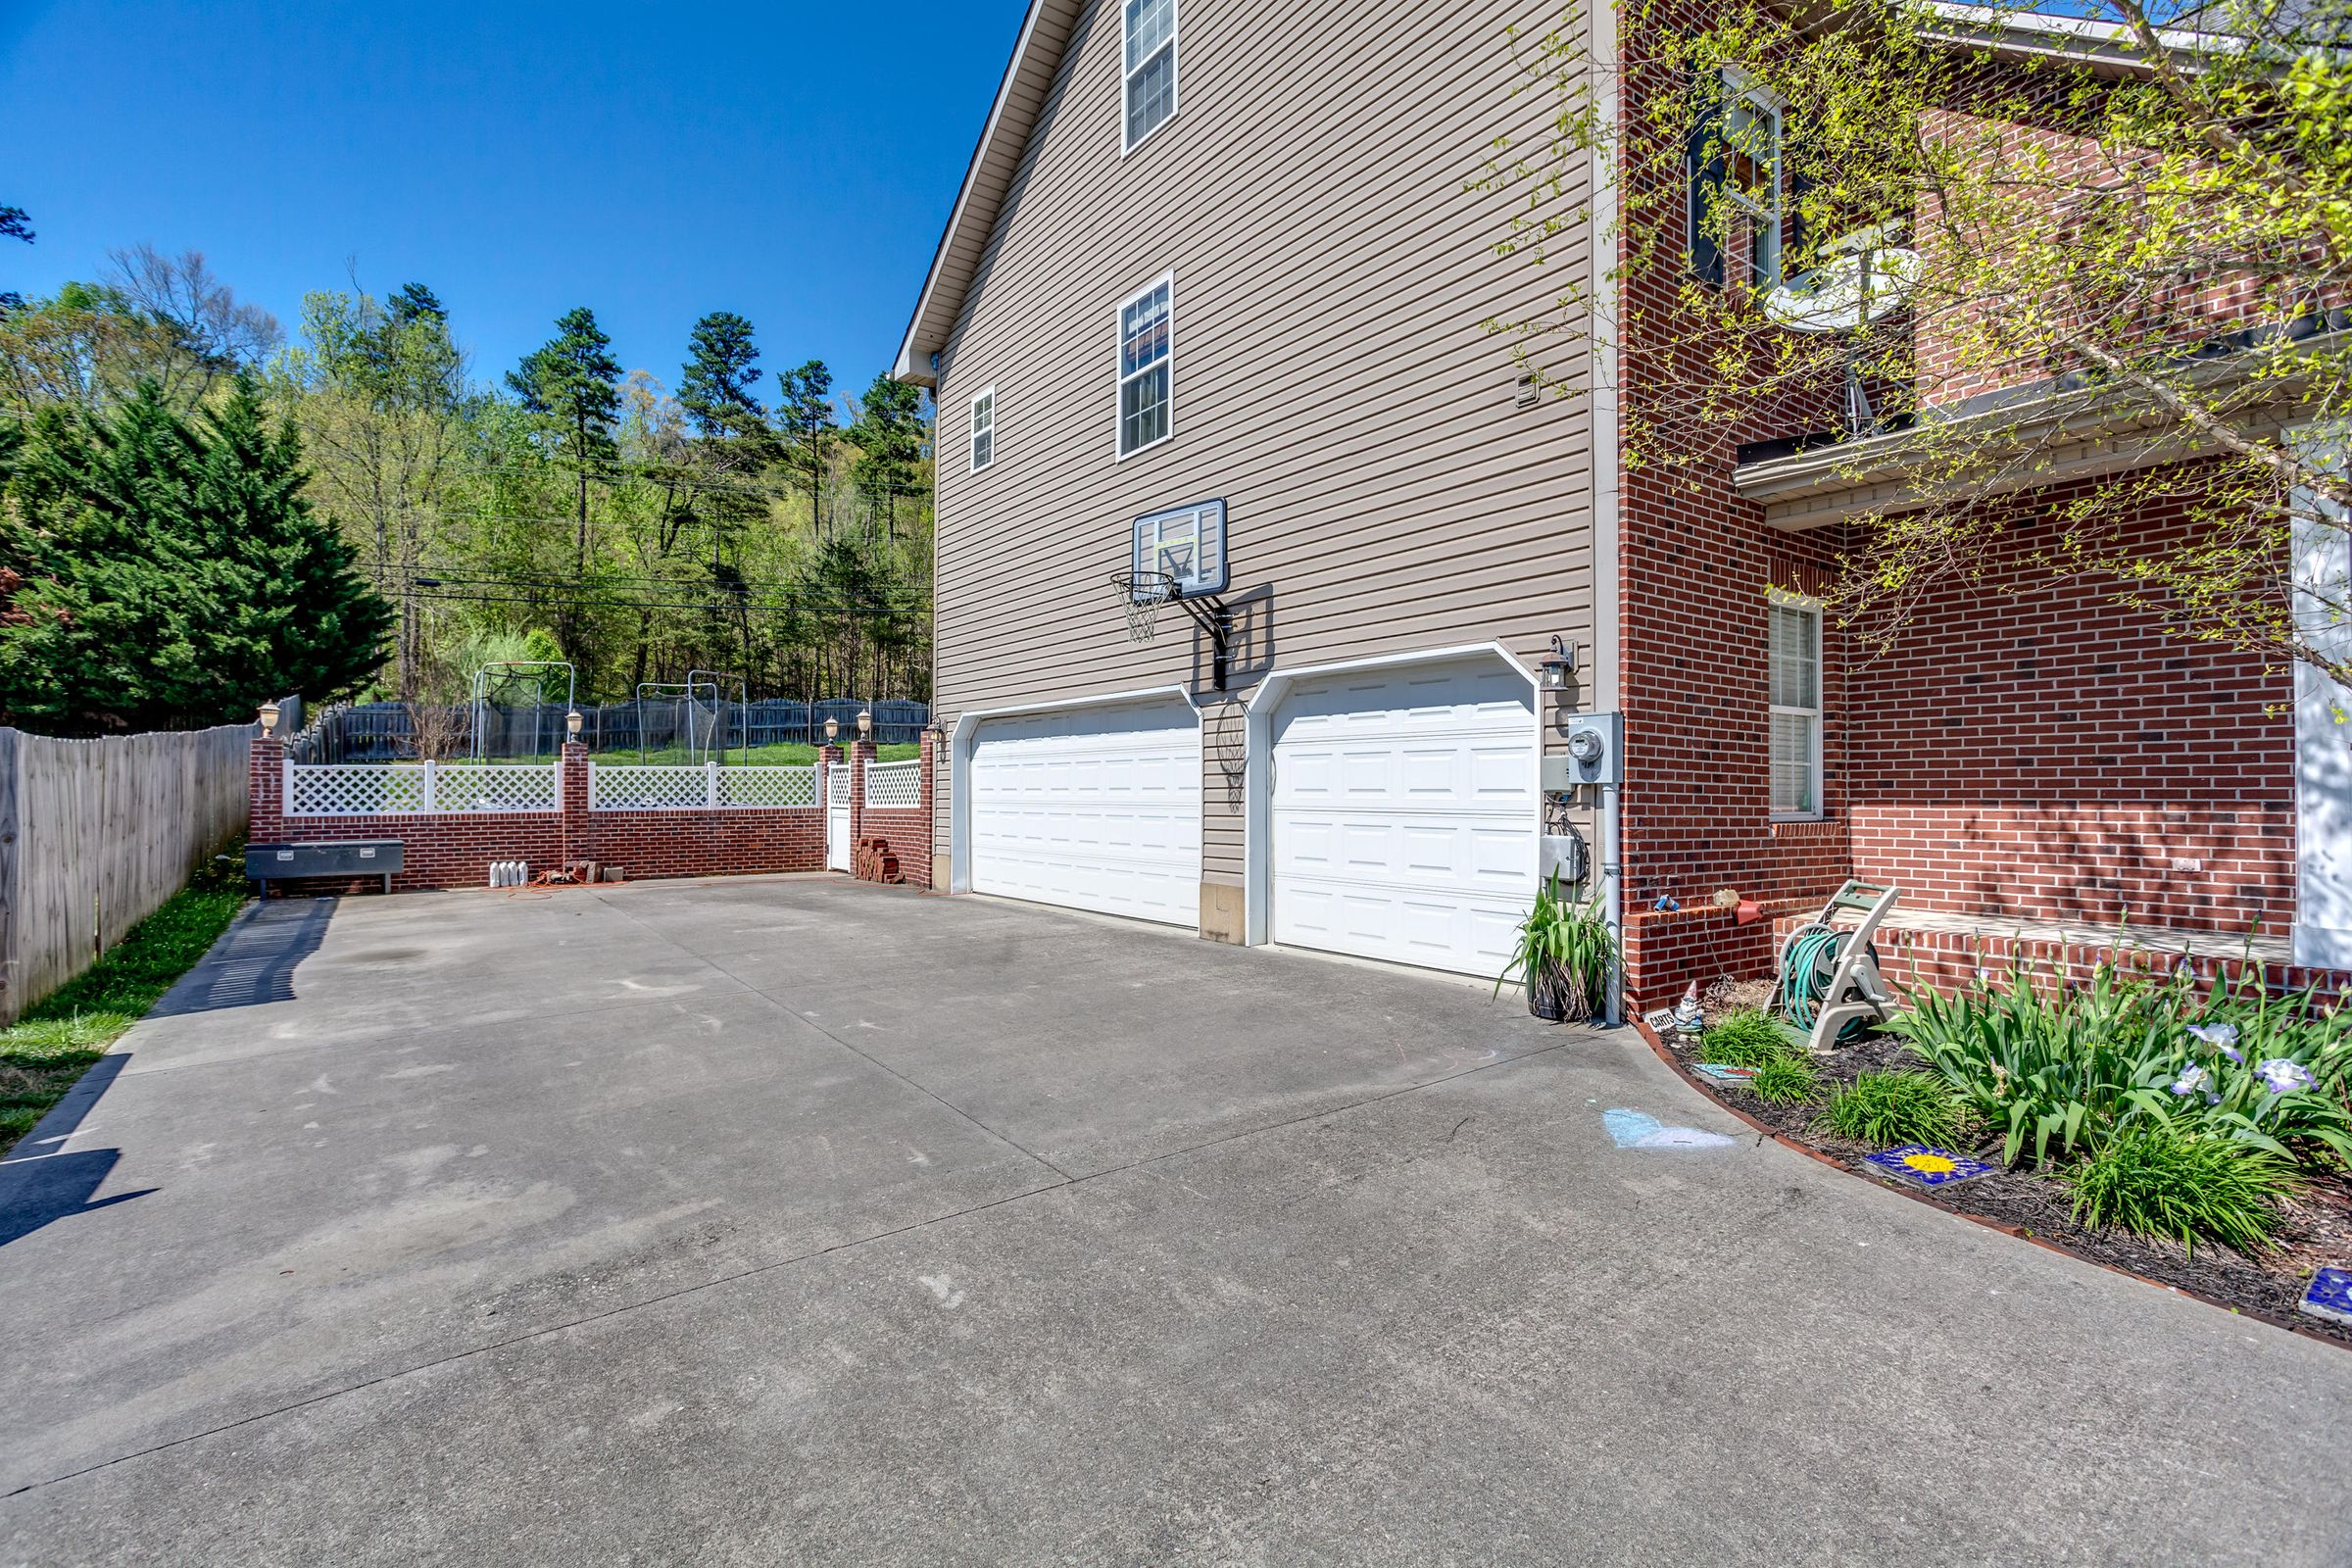 1151 Paxton Drive - 3 car garage - parki